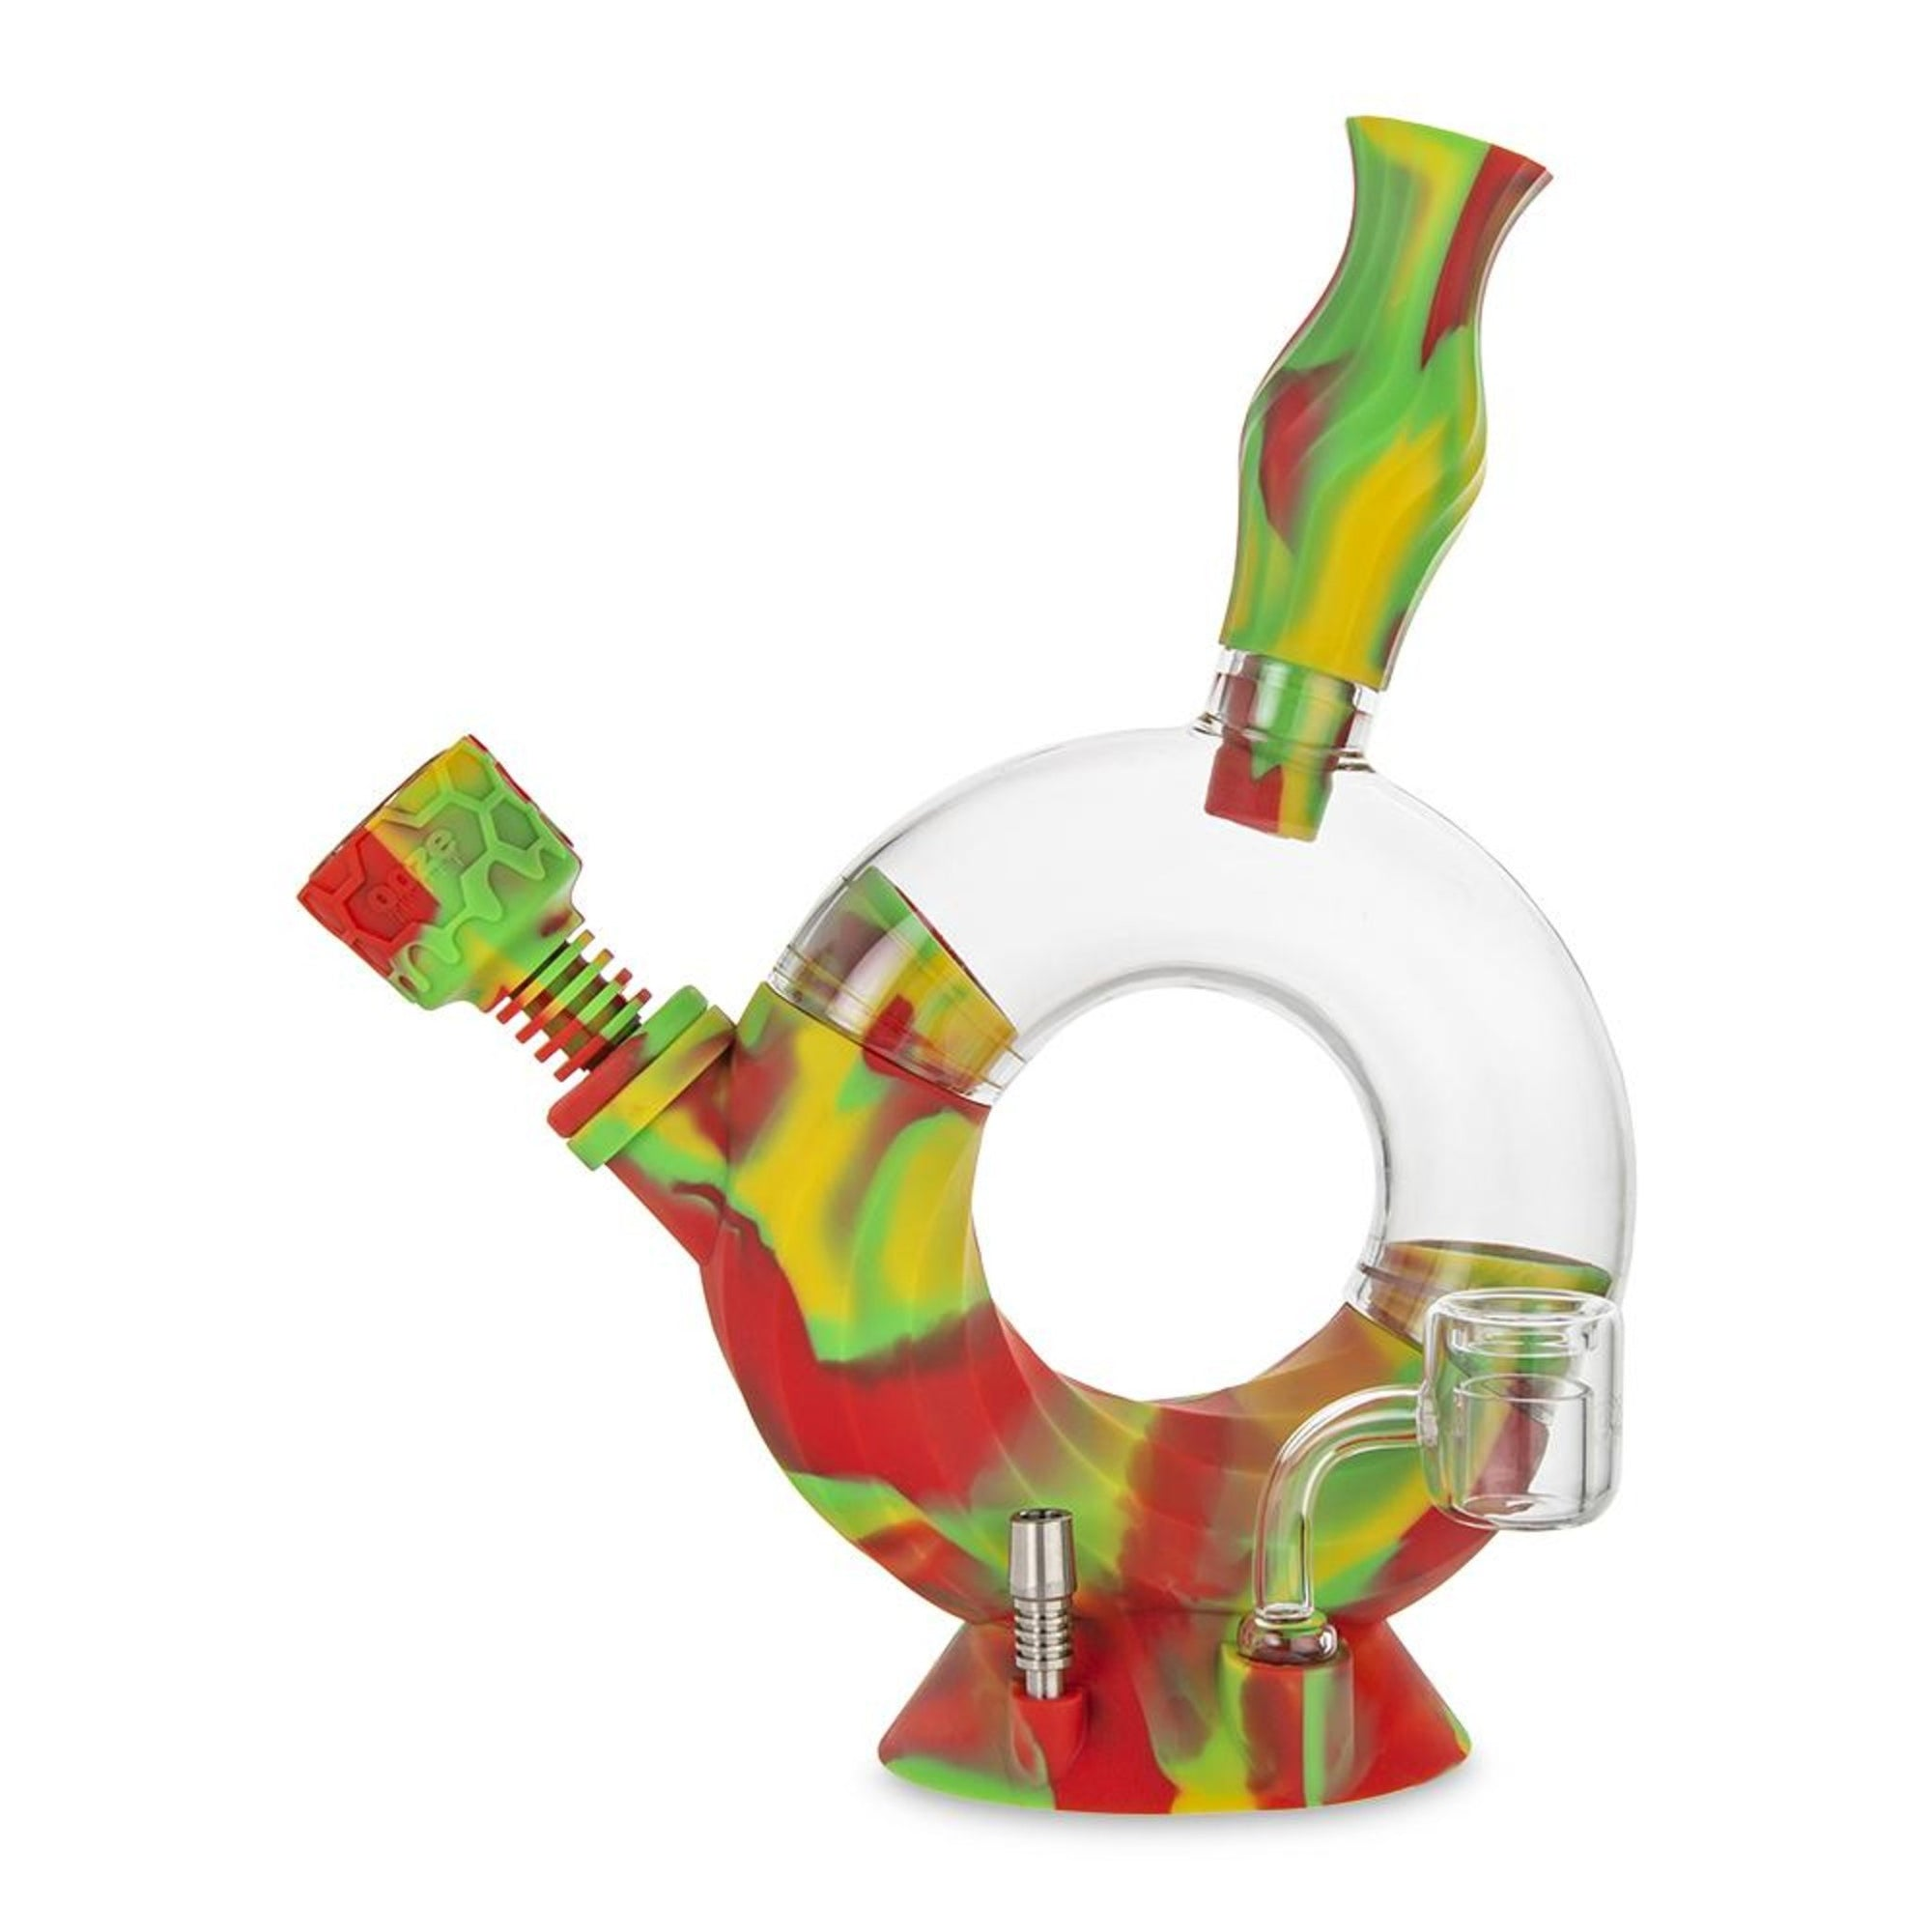 Ooze Ozone 4-in-1 Silicone Water Pipe n Nectar Collector - 11in